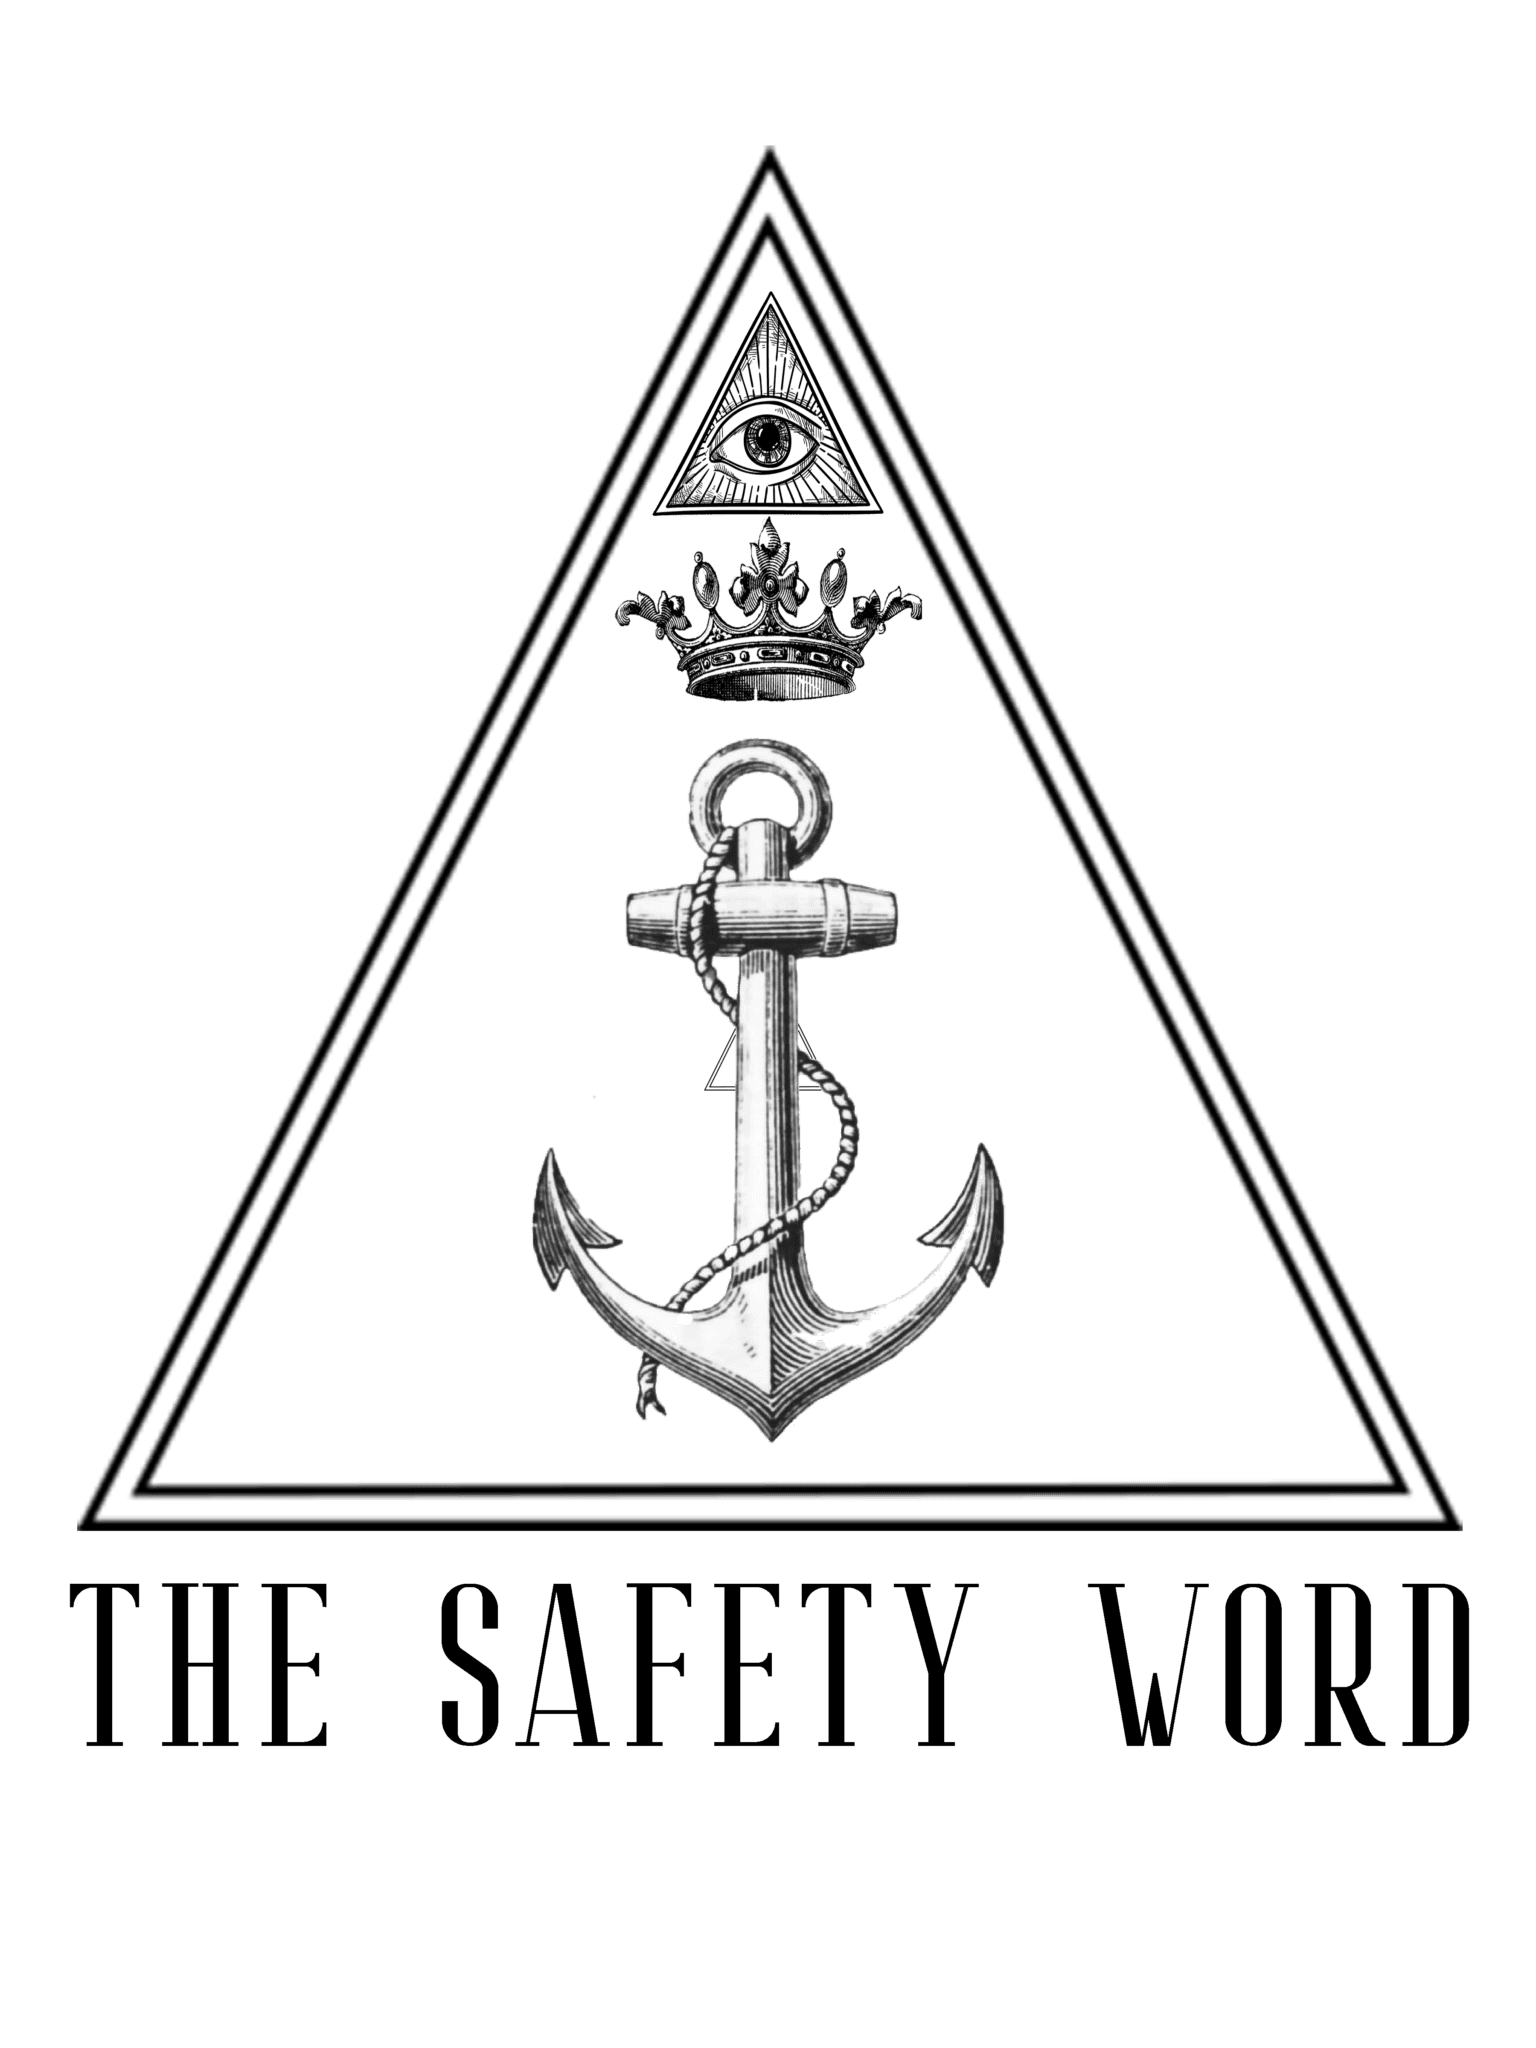 The Safety Word